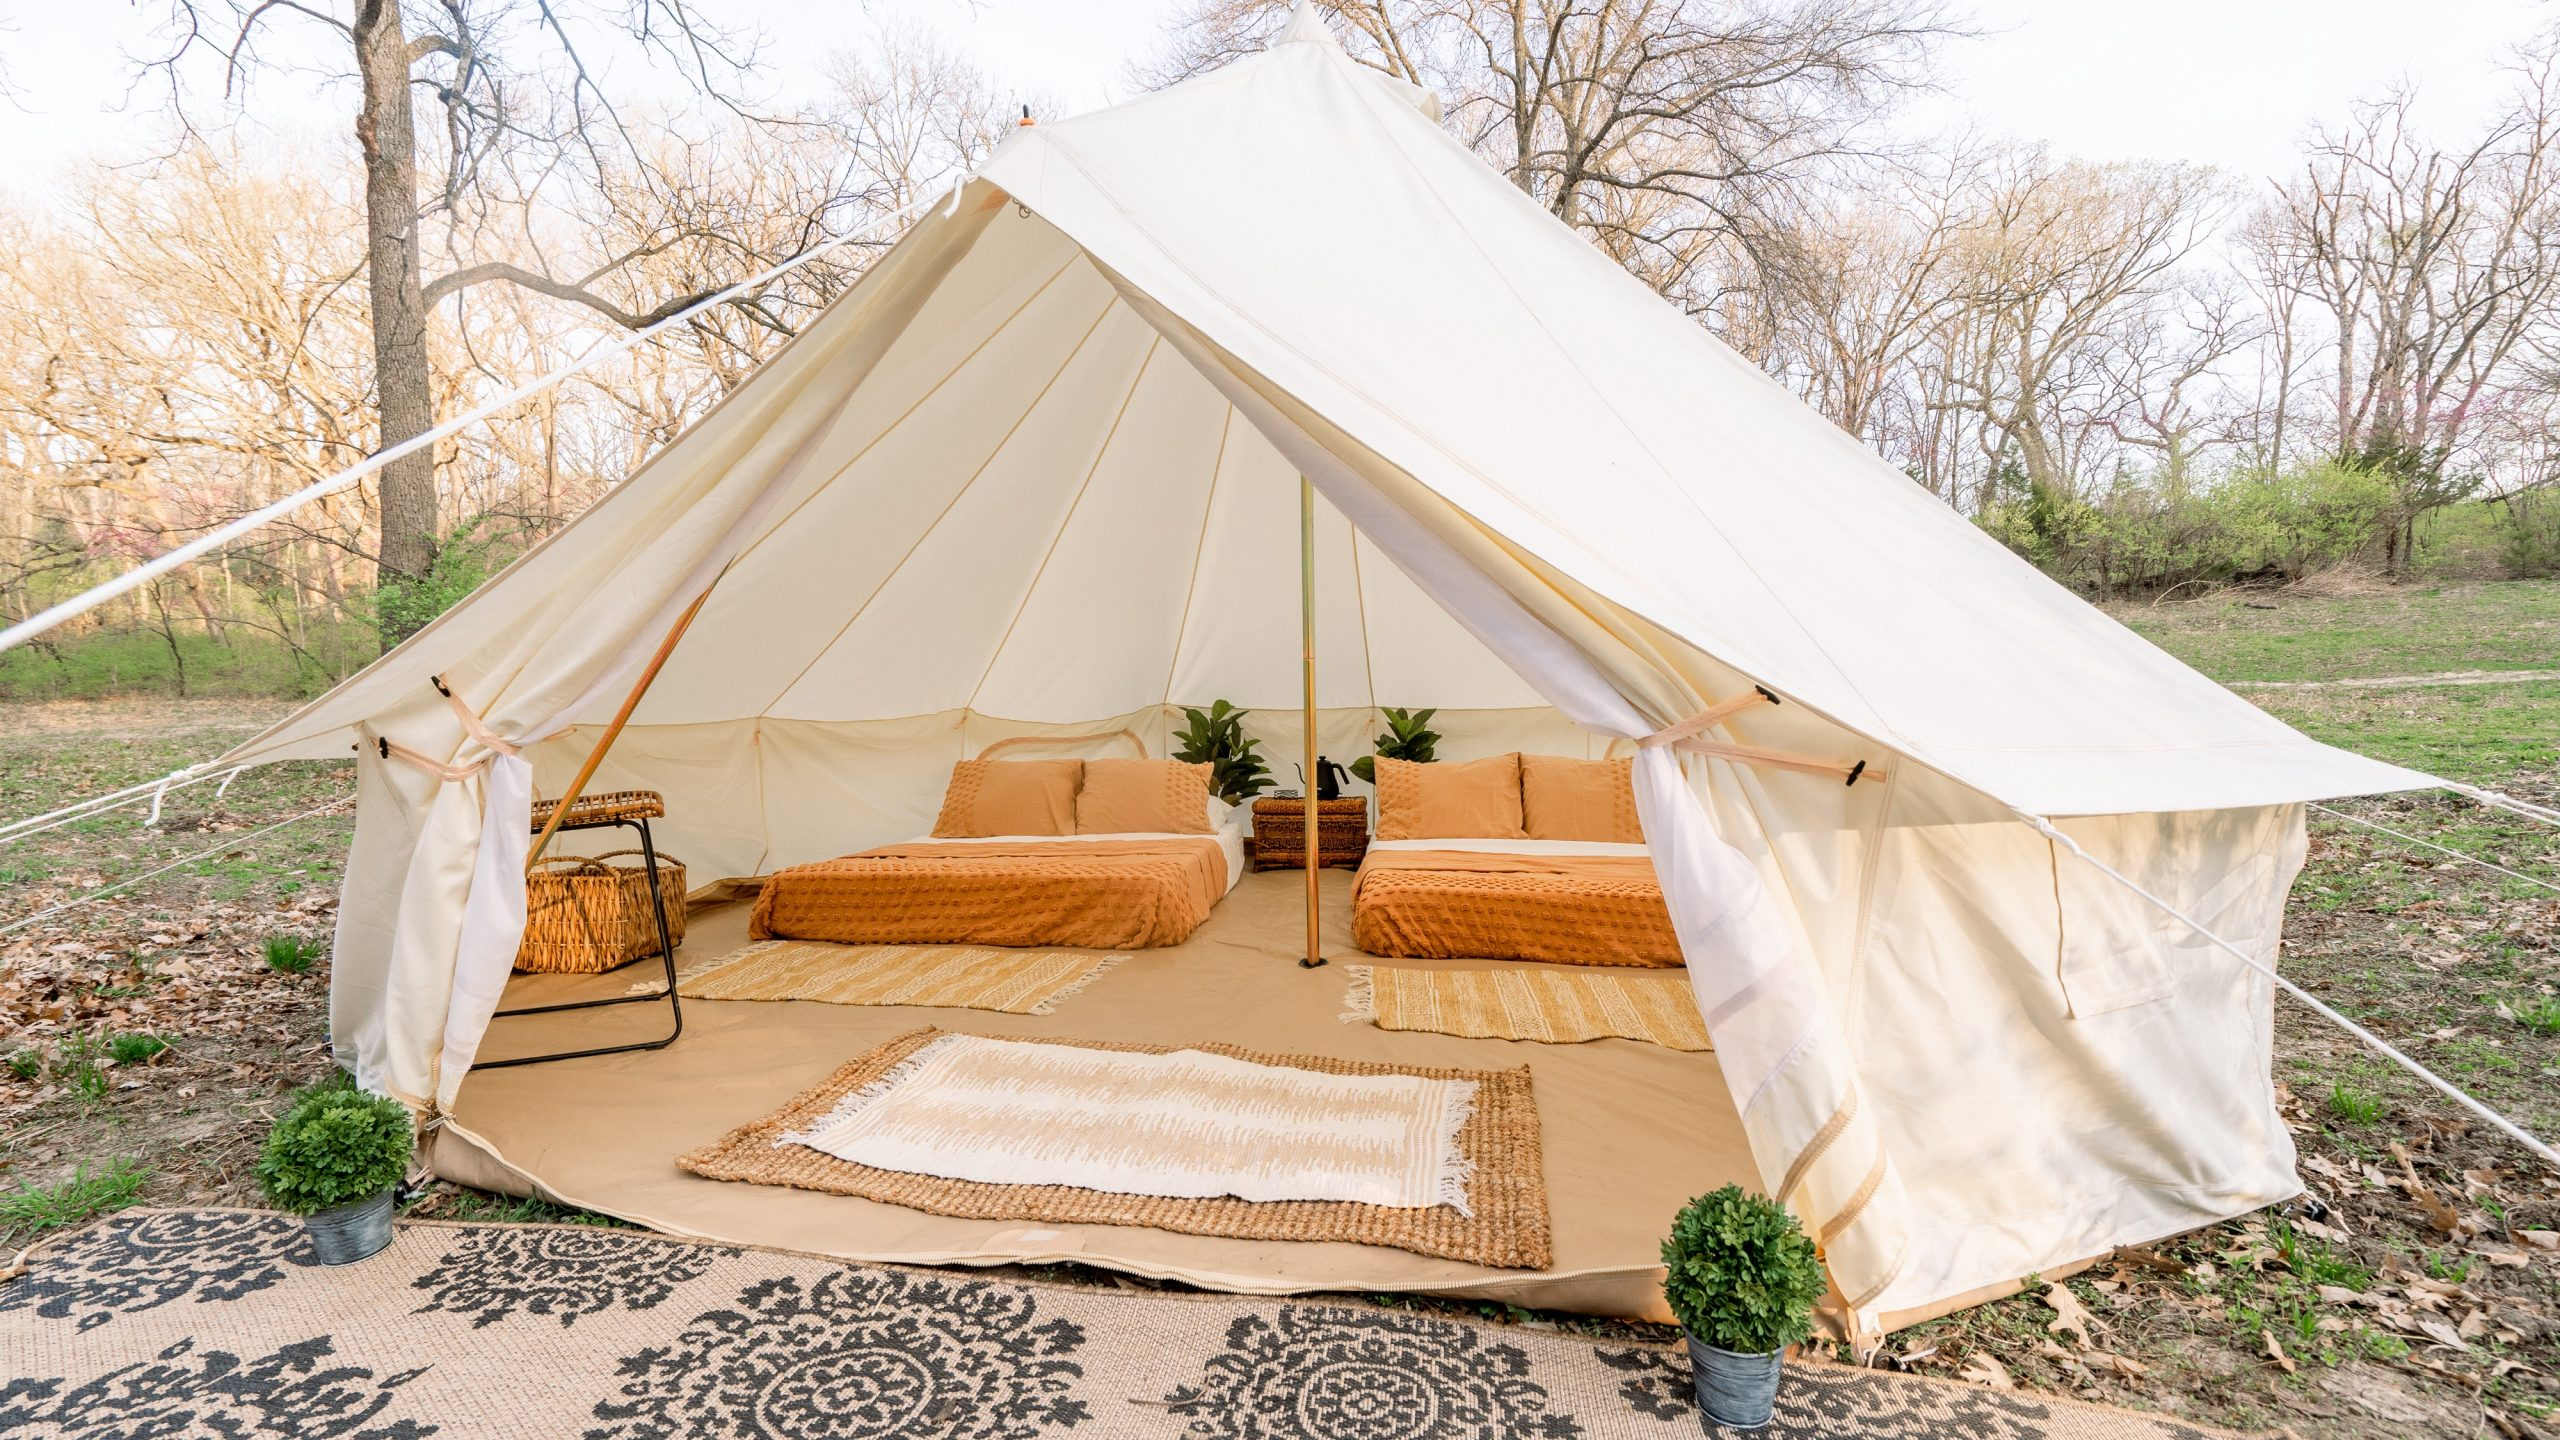 Suite Tea To Open New Glamping Village at Camp Lake of The Woods in Swope Park